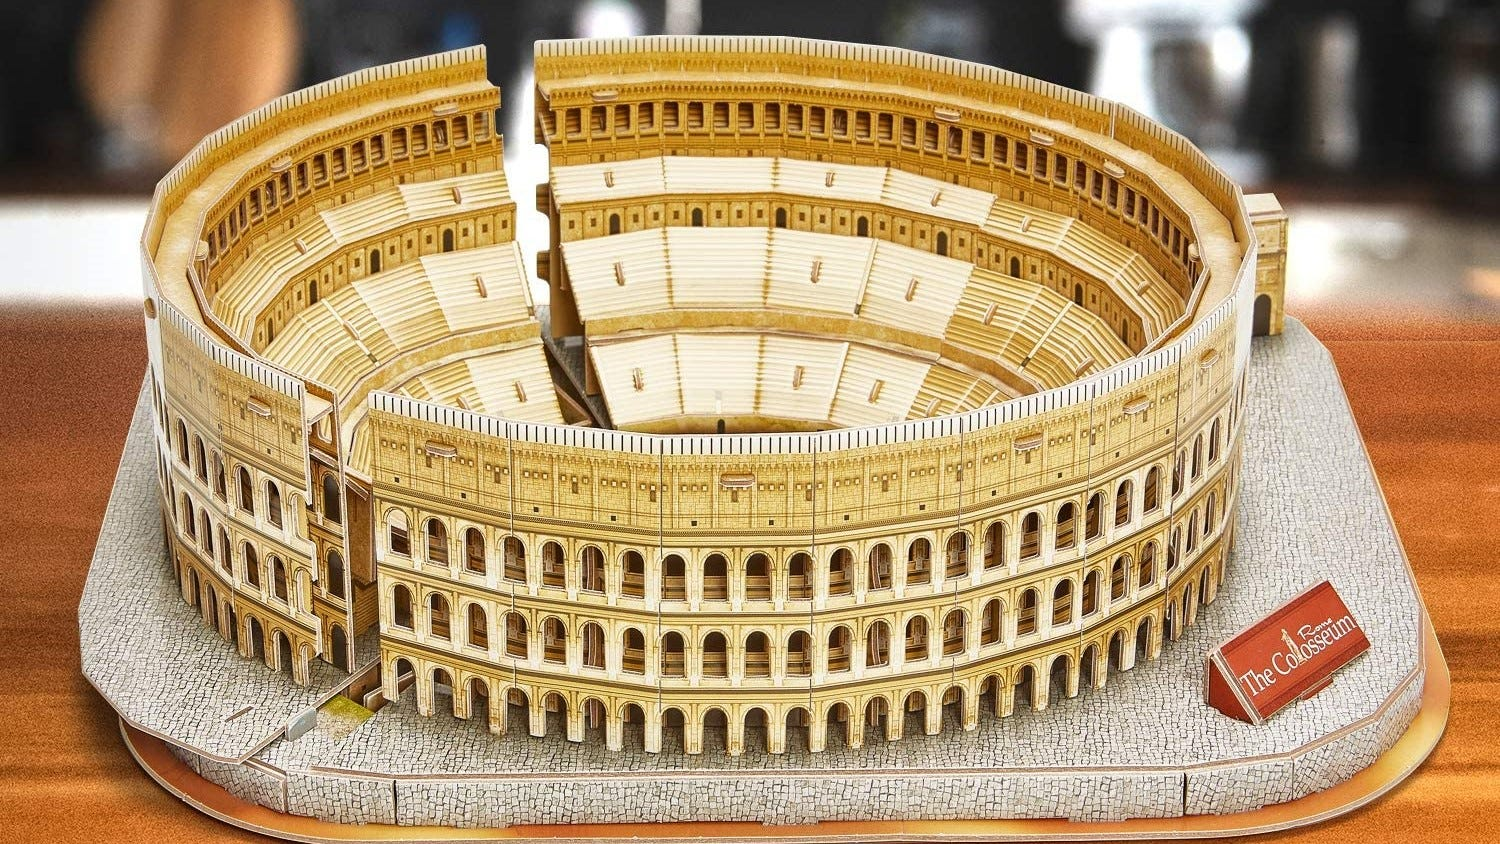 The Roman Colosseum 3D puzzle, fully assembled.